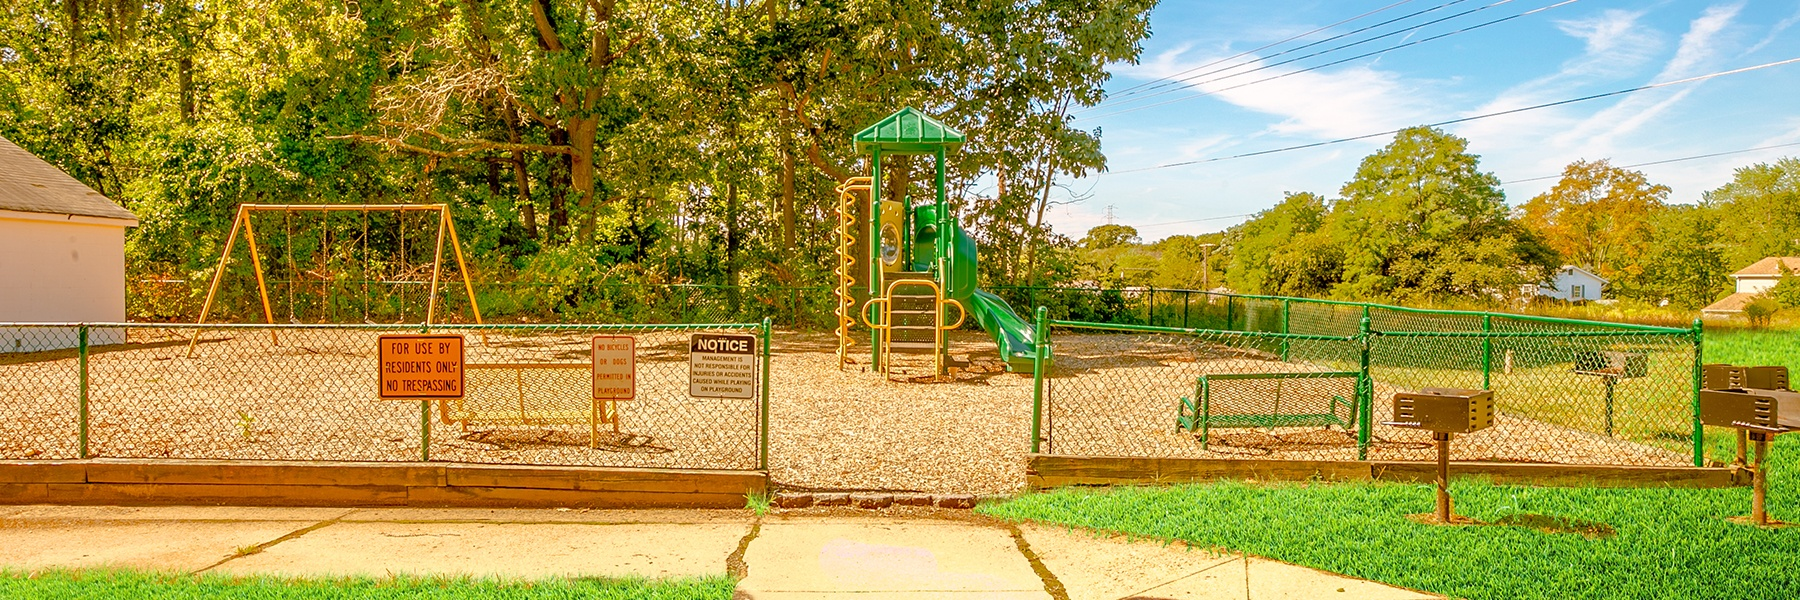 Woodmere Apartments playground